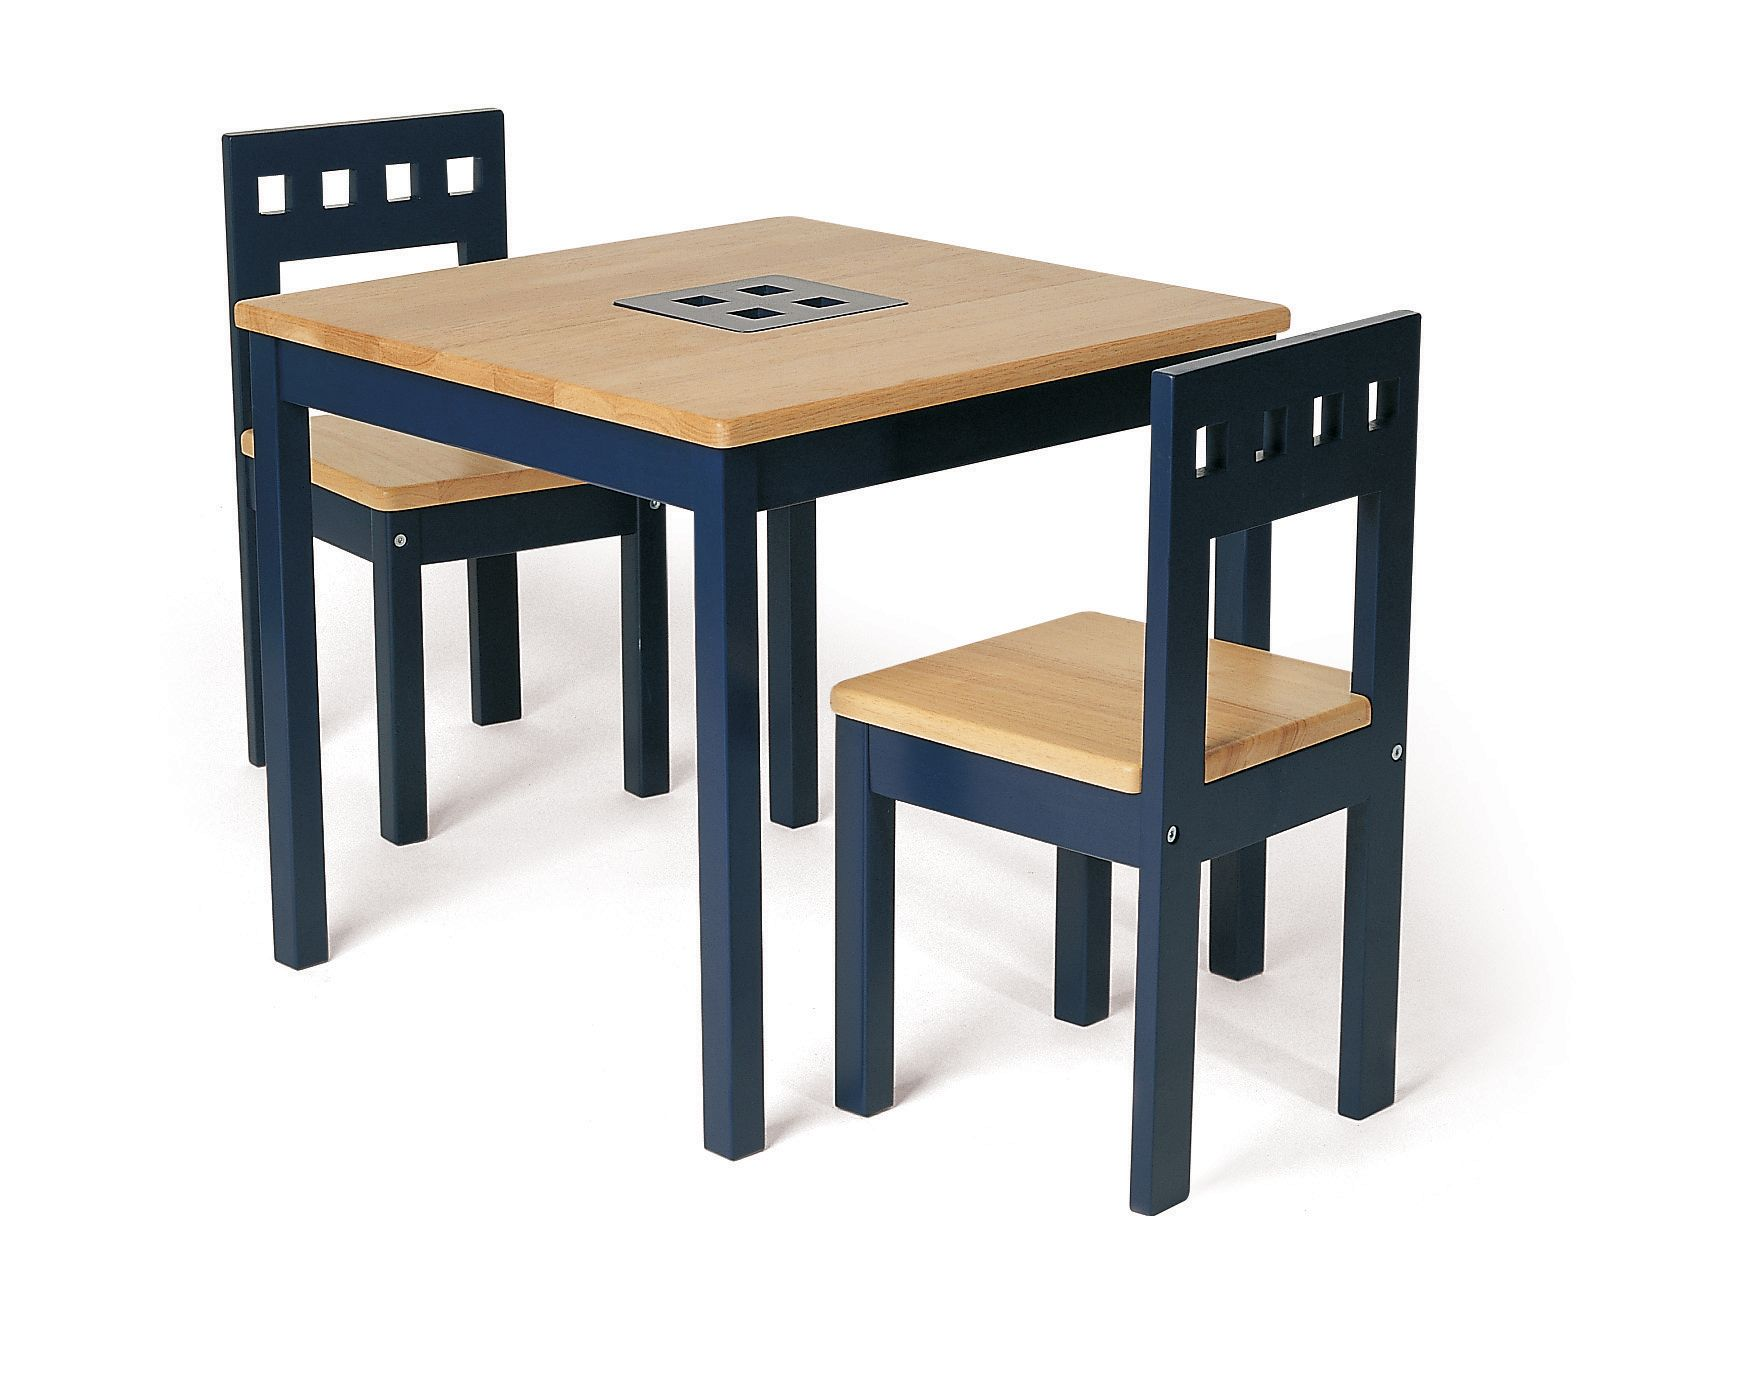 Wooden card table pintoy blue and two chair set